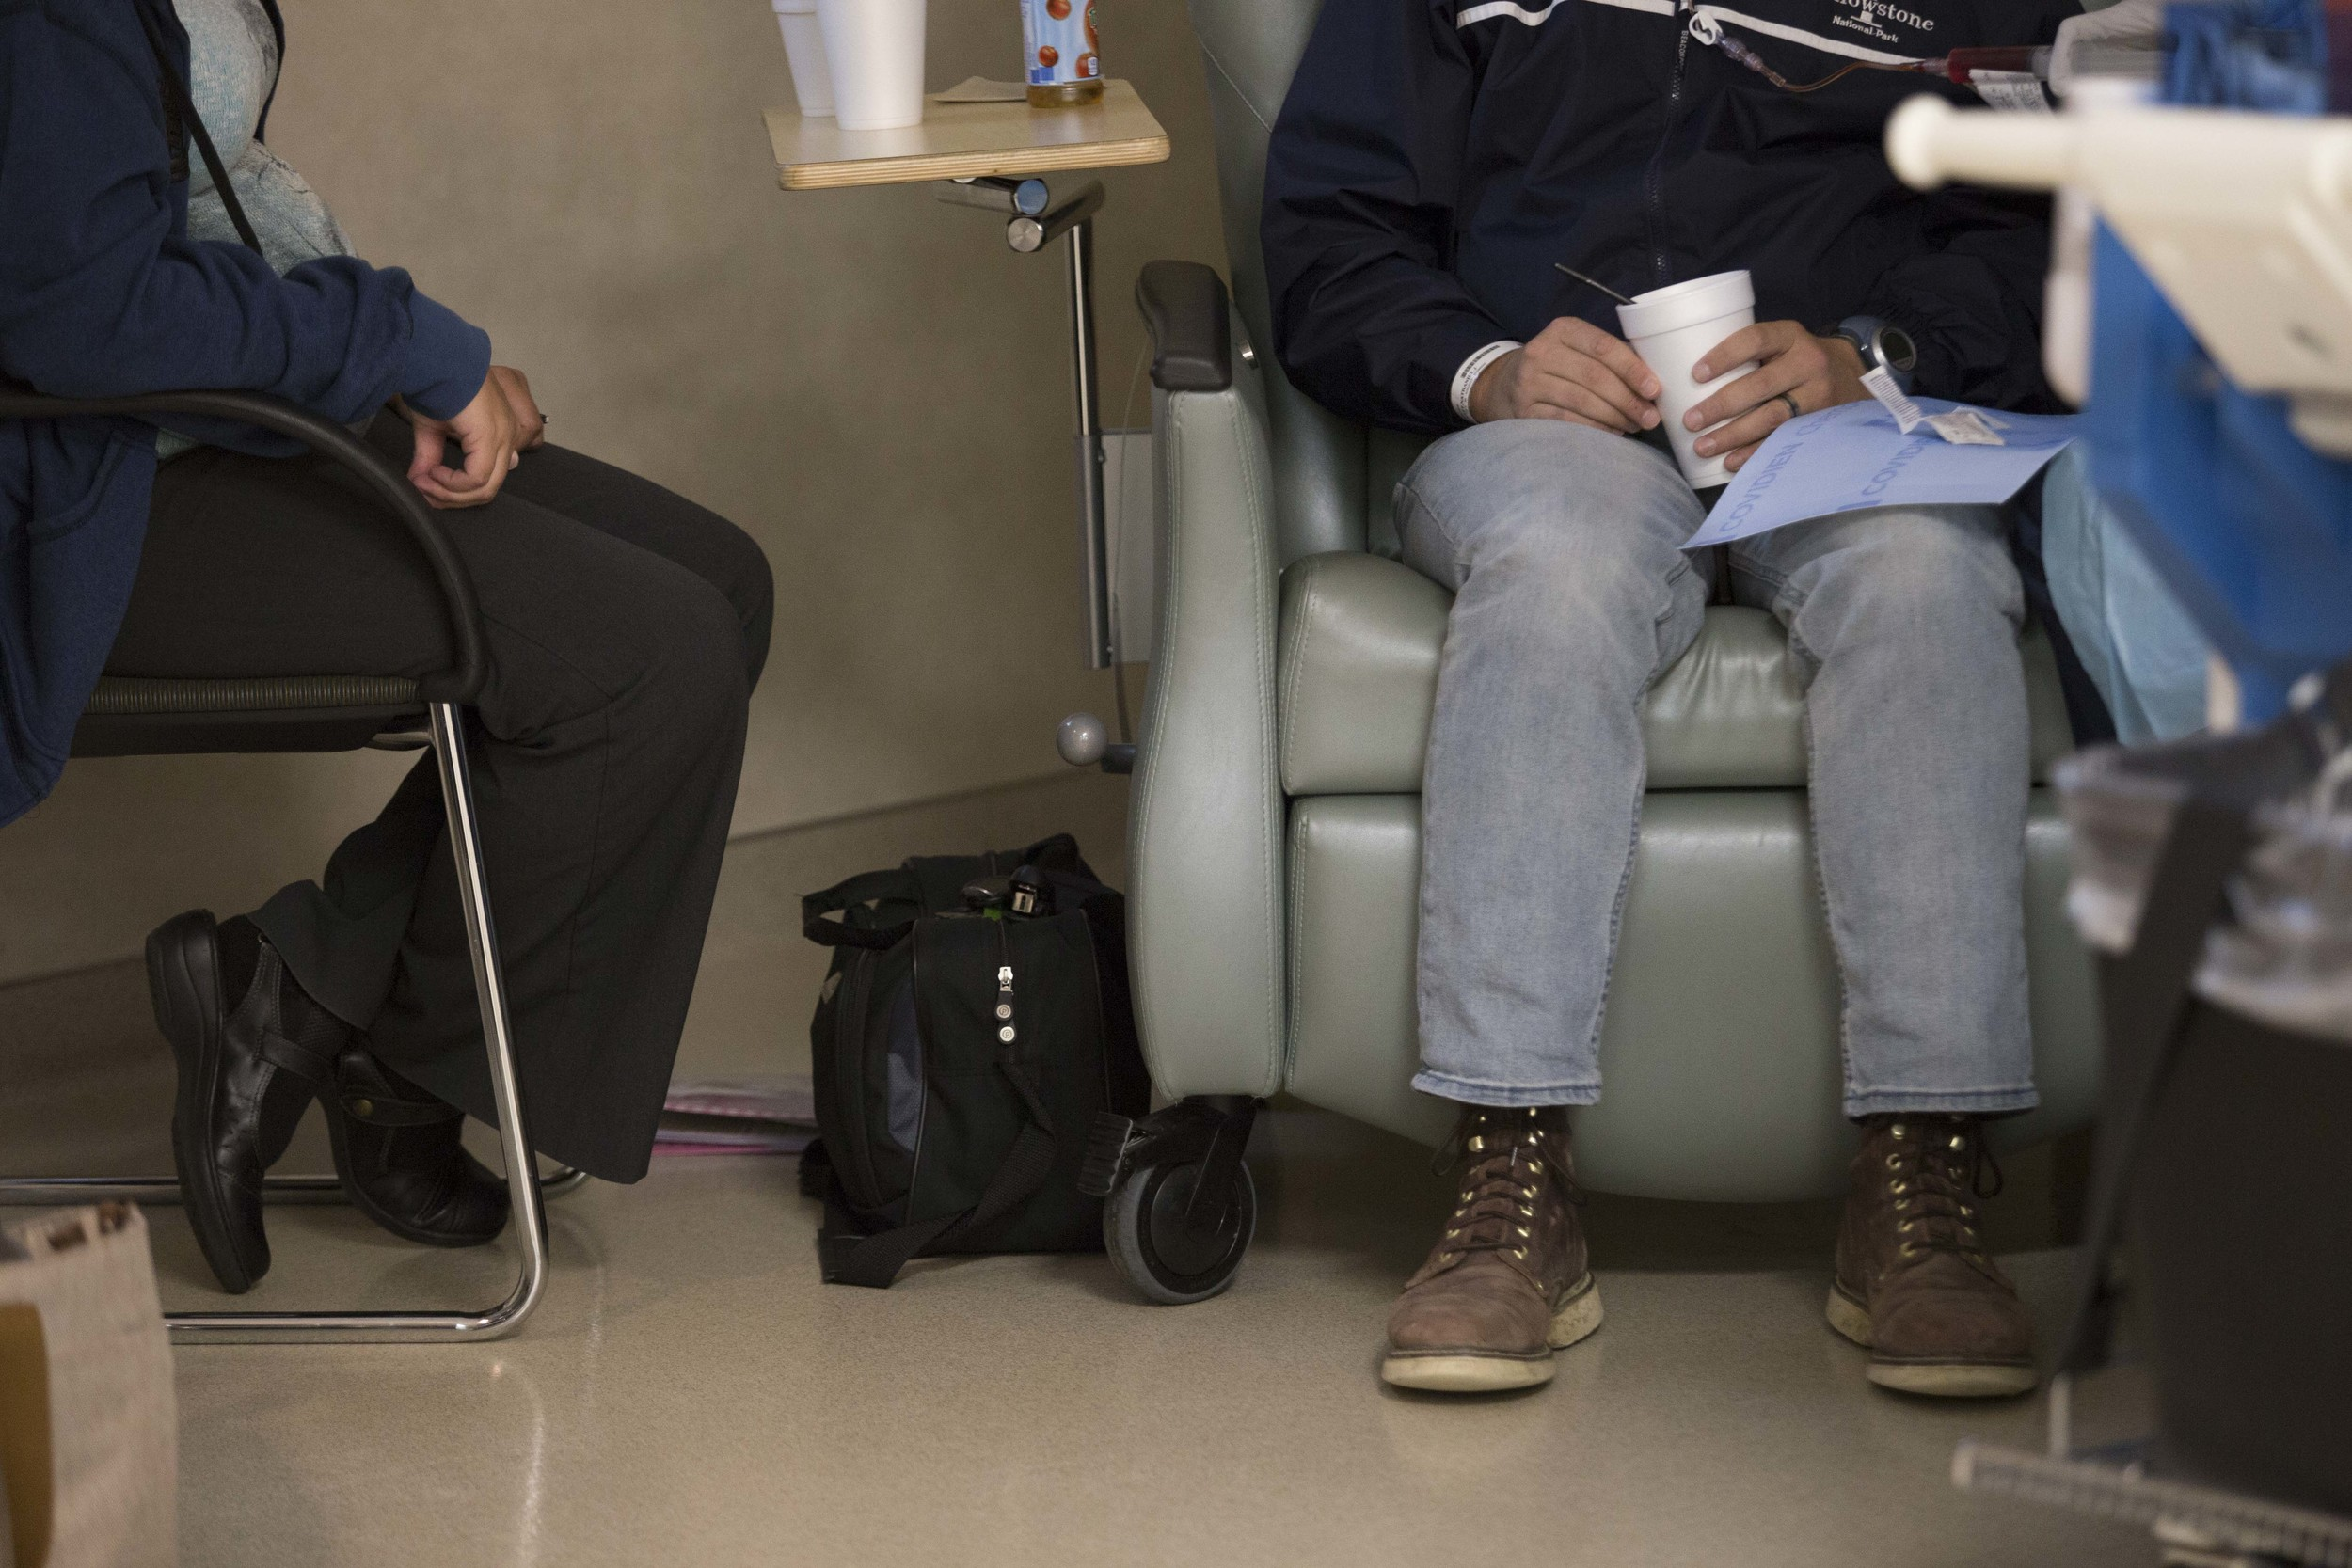 Sarah and Nate in the chemotherapy treatment center